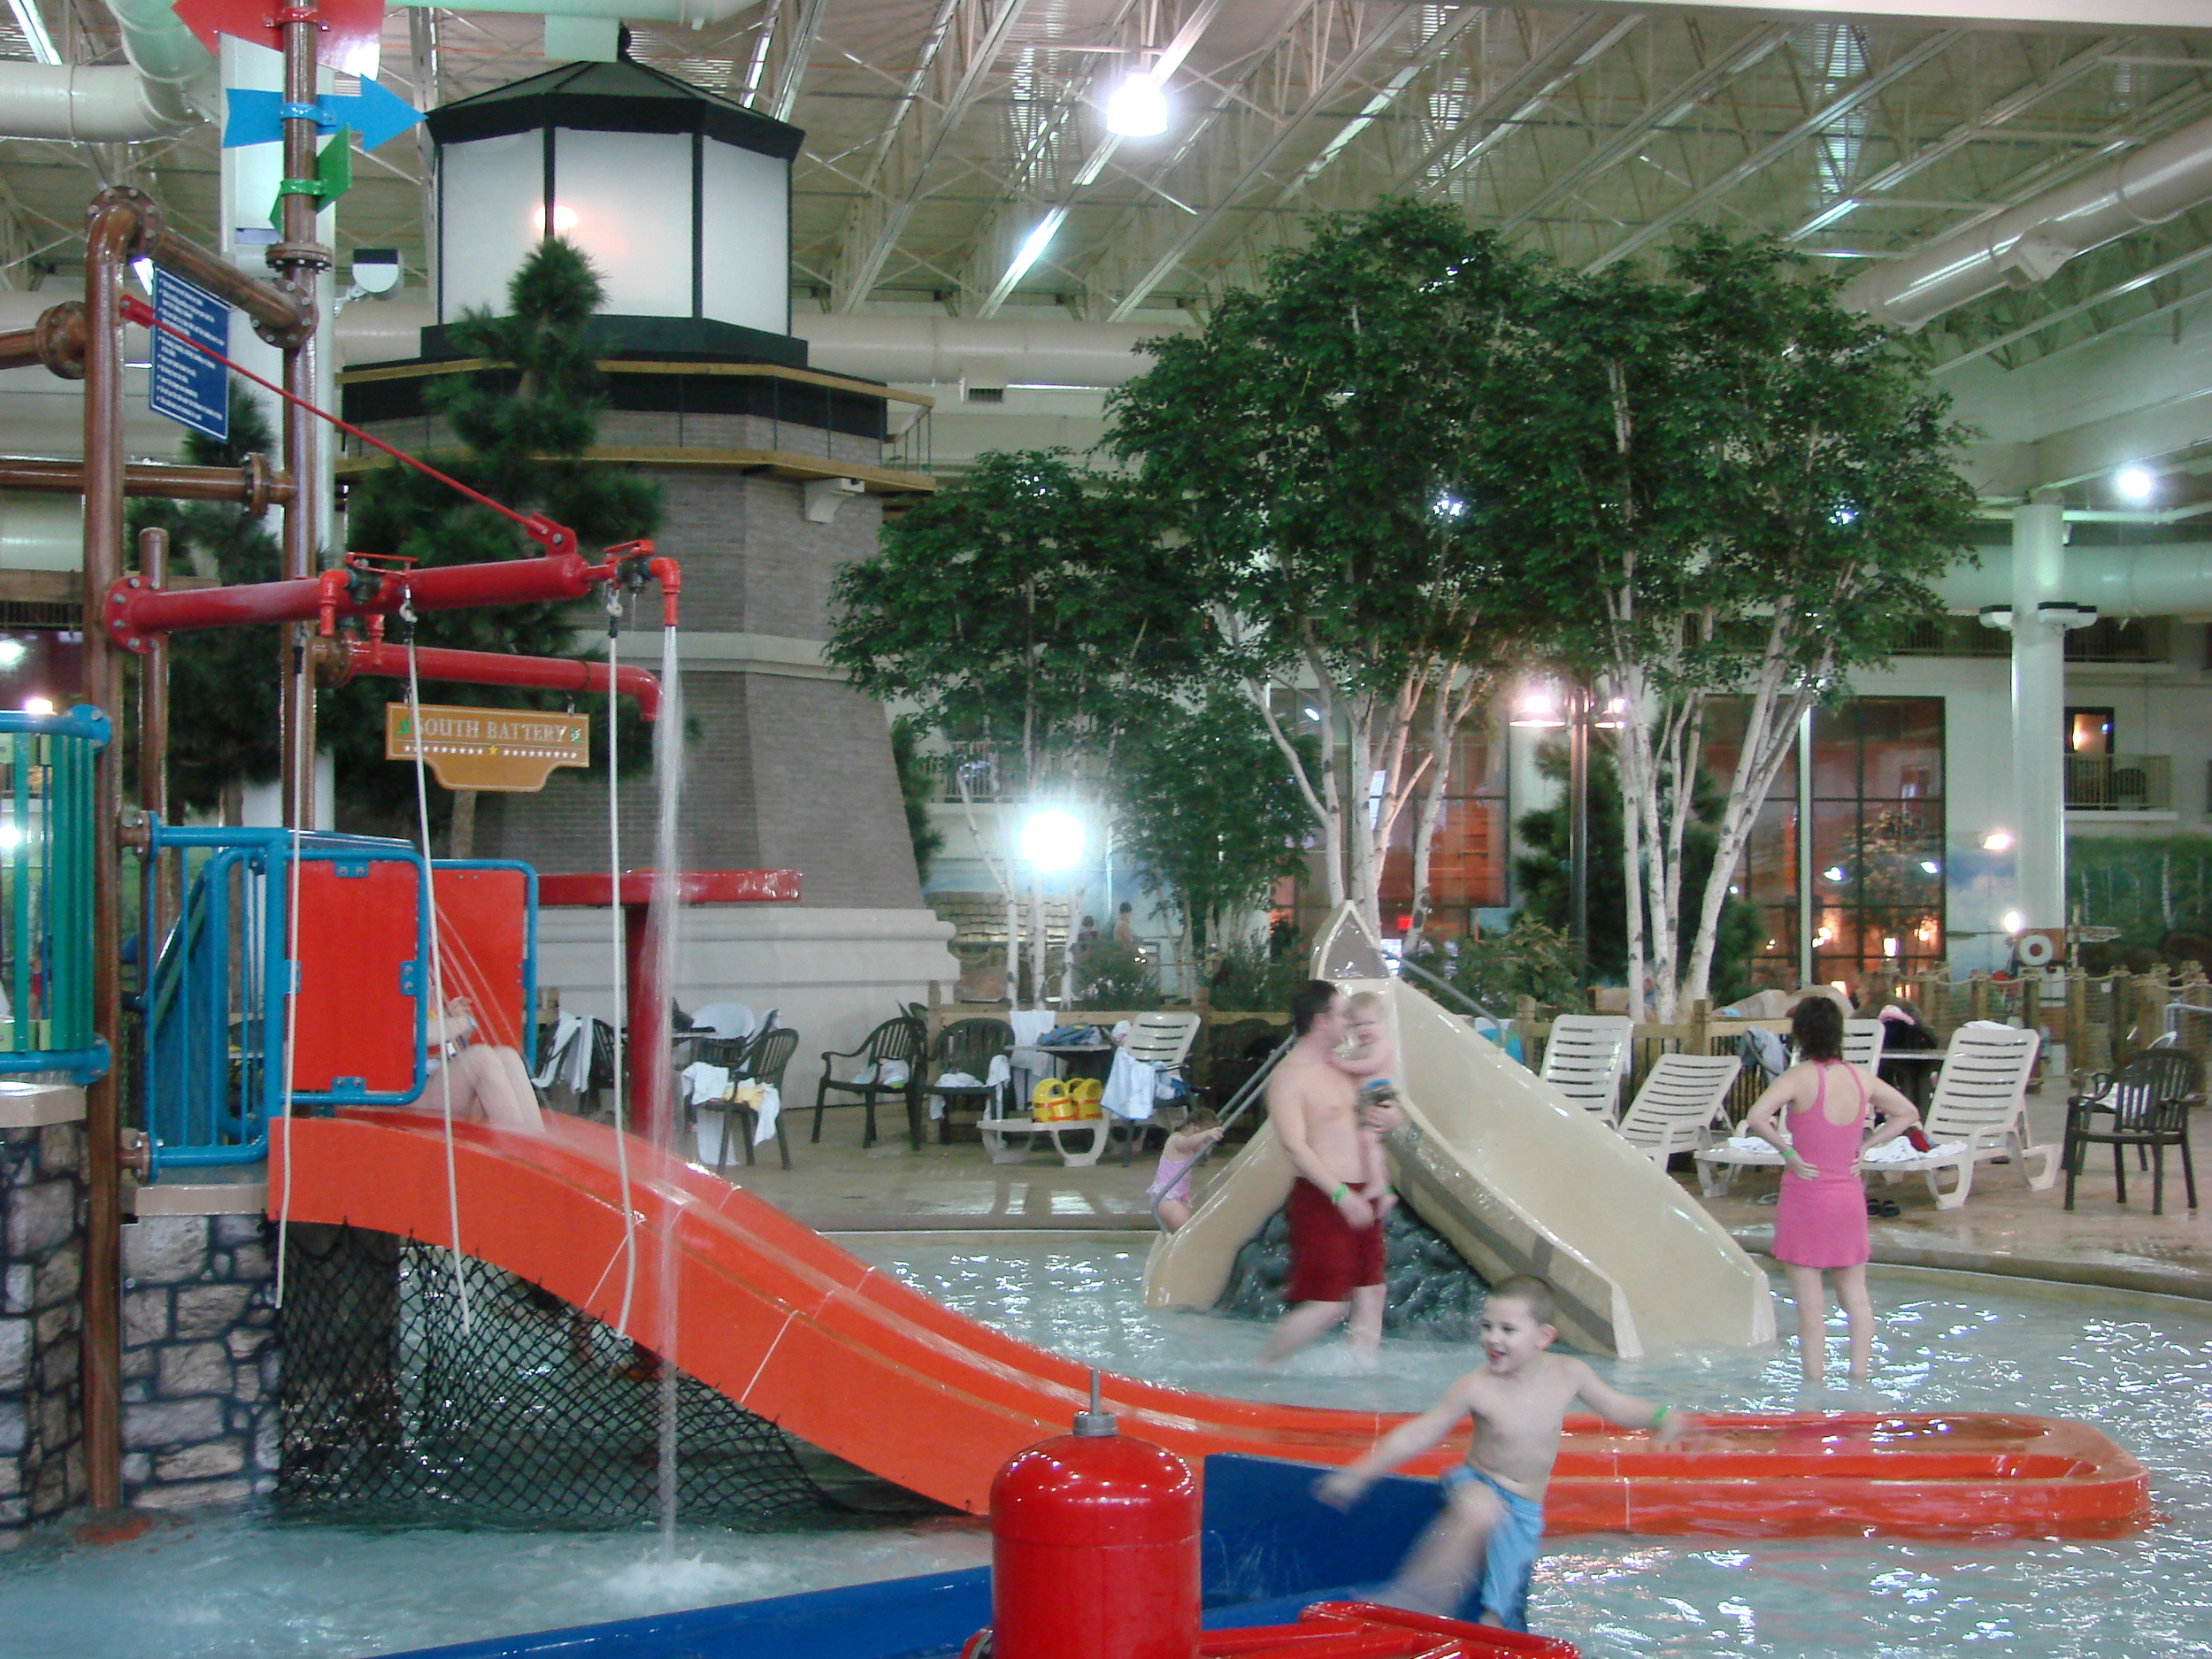 One of the indoor slides at water play structure at Waterpark of America in Bloomington, MN